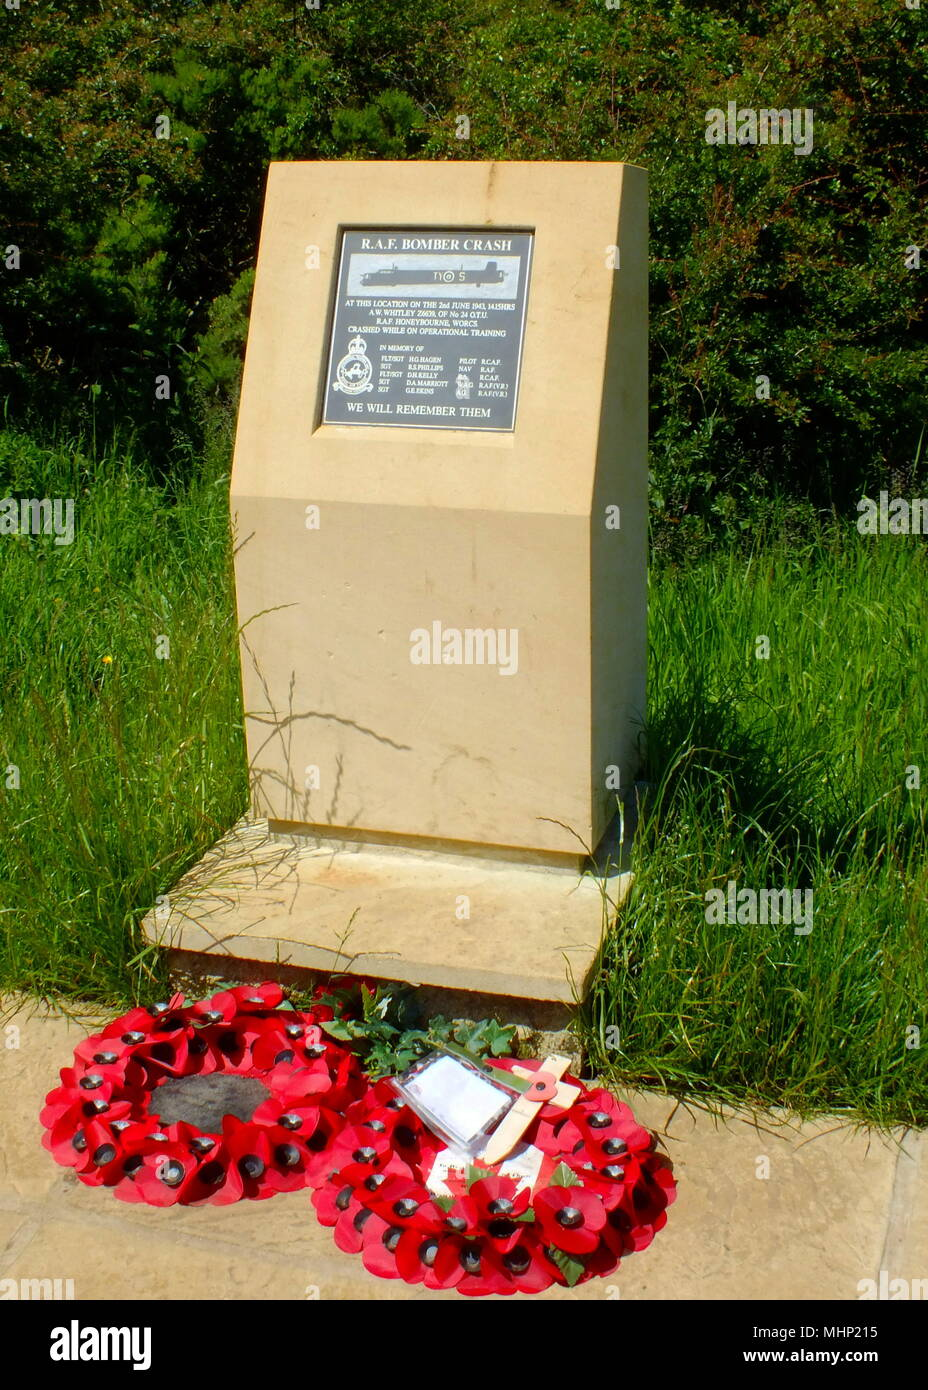 RAF bomber crash Memorial, near Broadway, Worcestershire -- on 2 June 1943 a plane and its crew from RAF Honeybourne crashed in this location while on operational training.      Date: circa 2010s - Stock Image